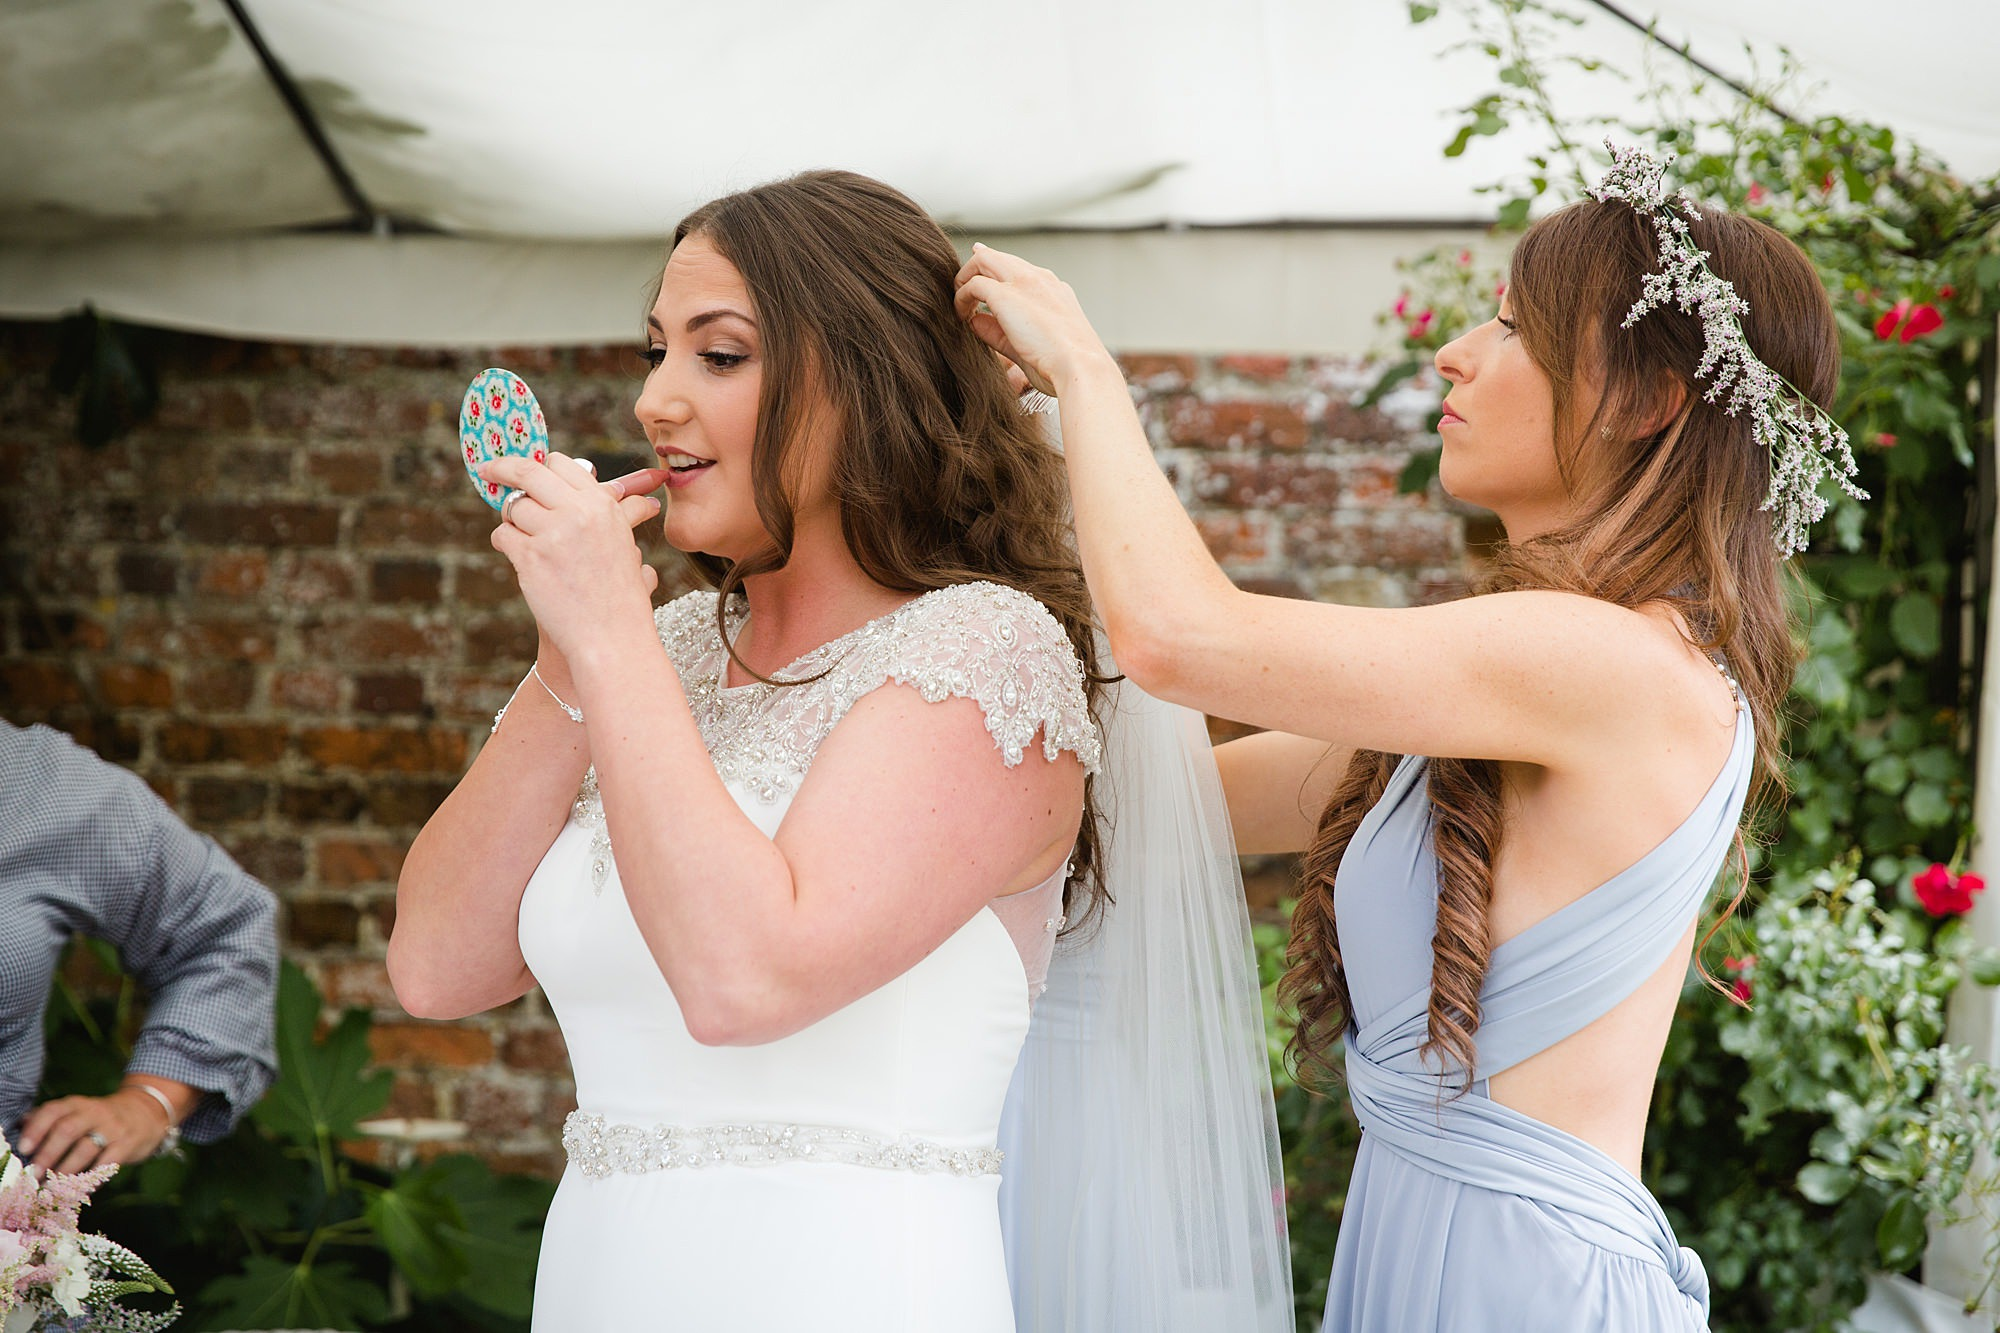 fun outdoor wedding bride outs on lipstick